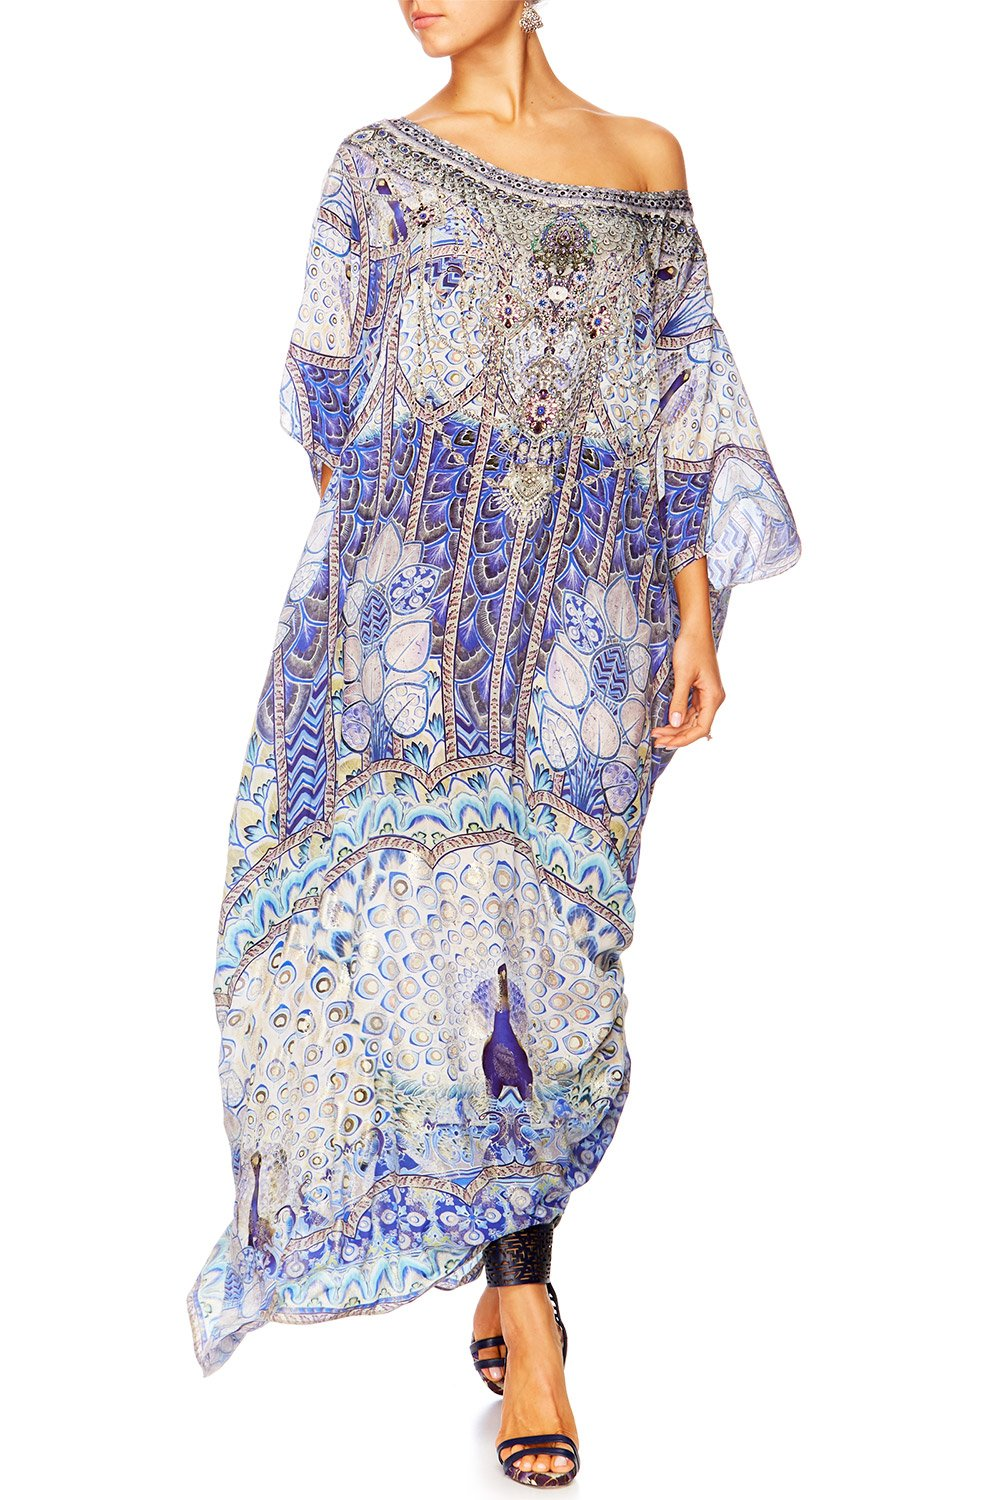 CAMILLA WINGS TO FLY ROUND NECK KAFTAN